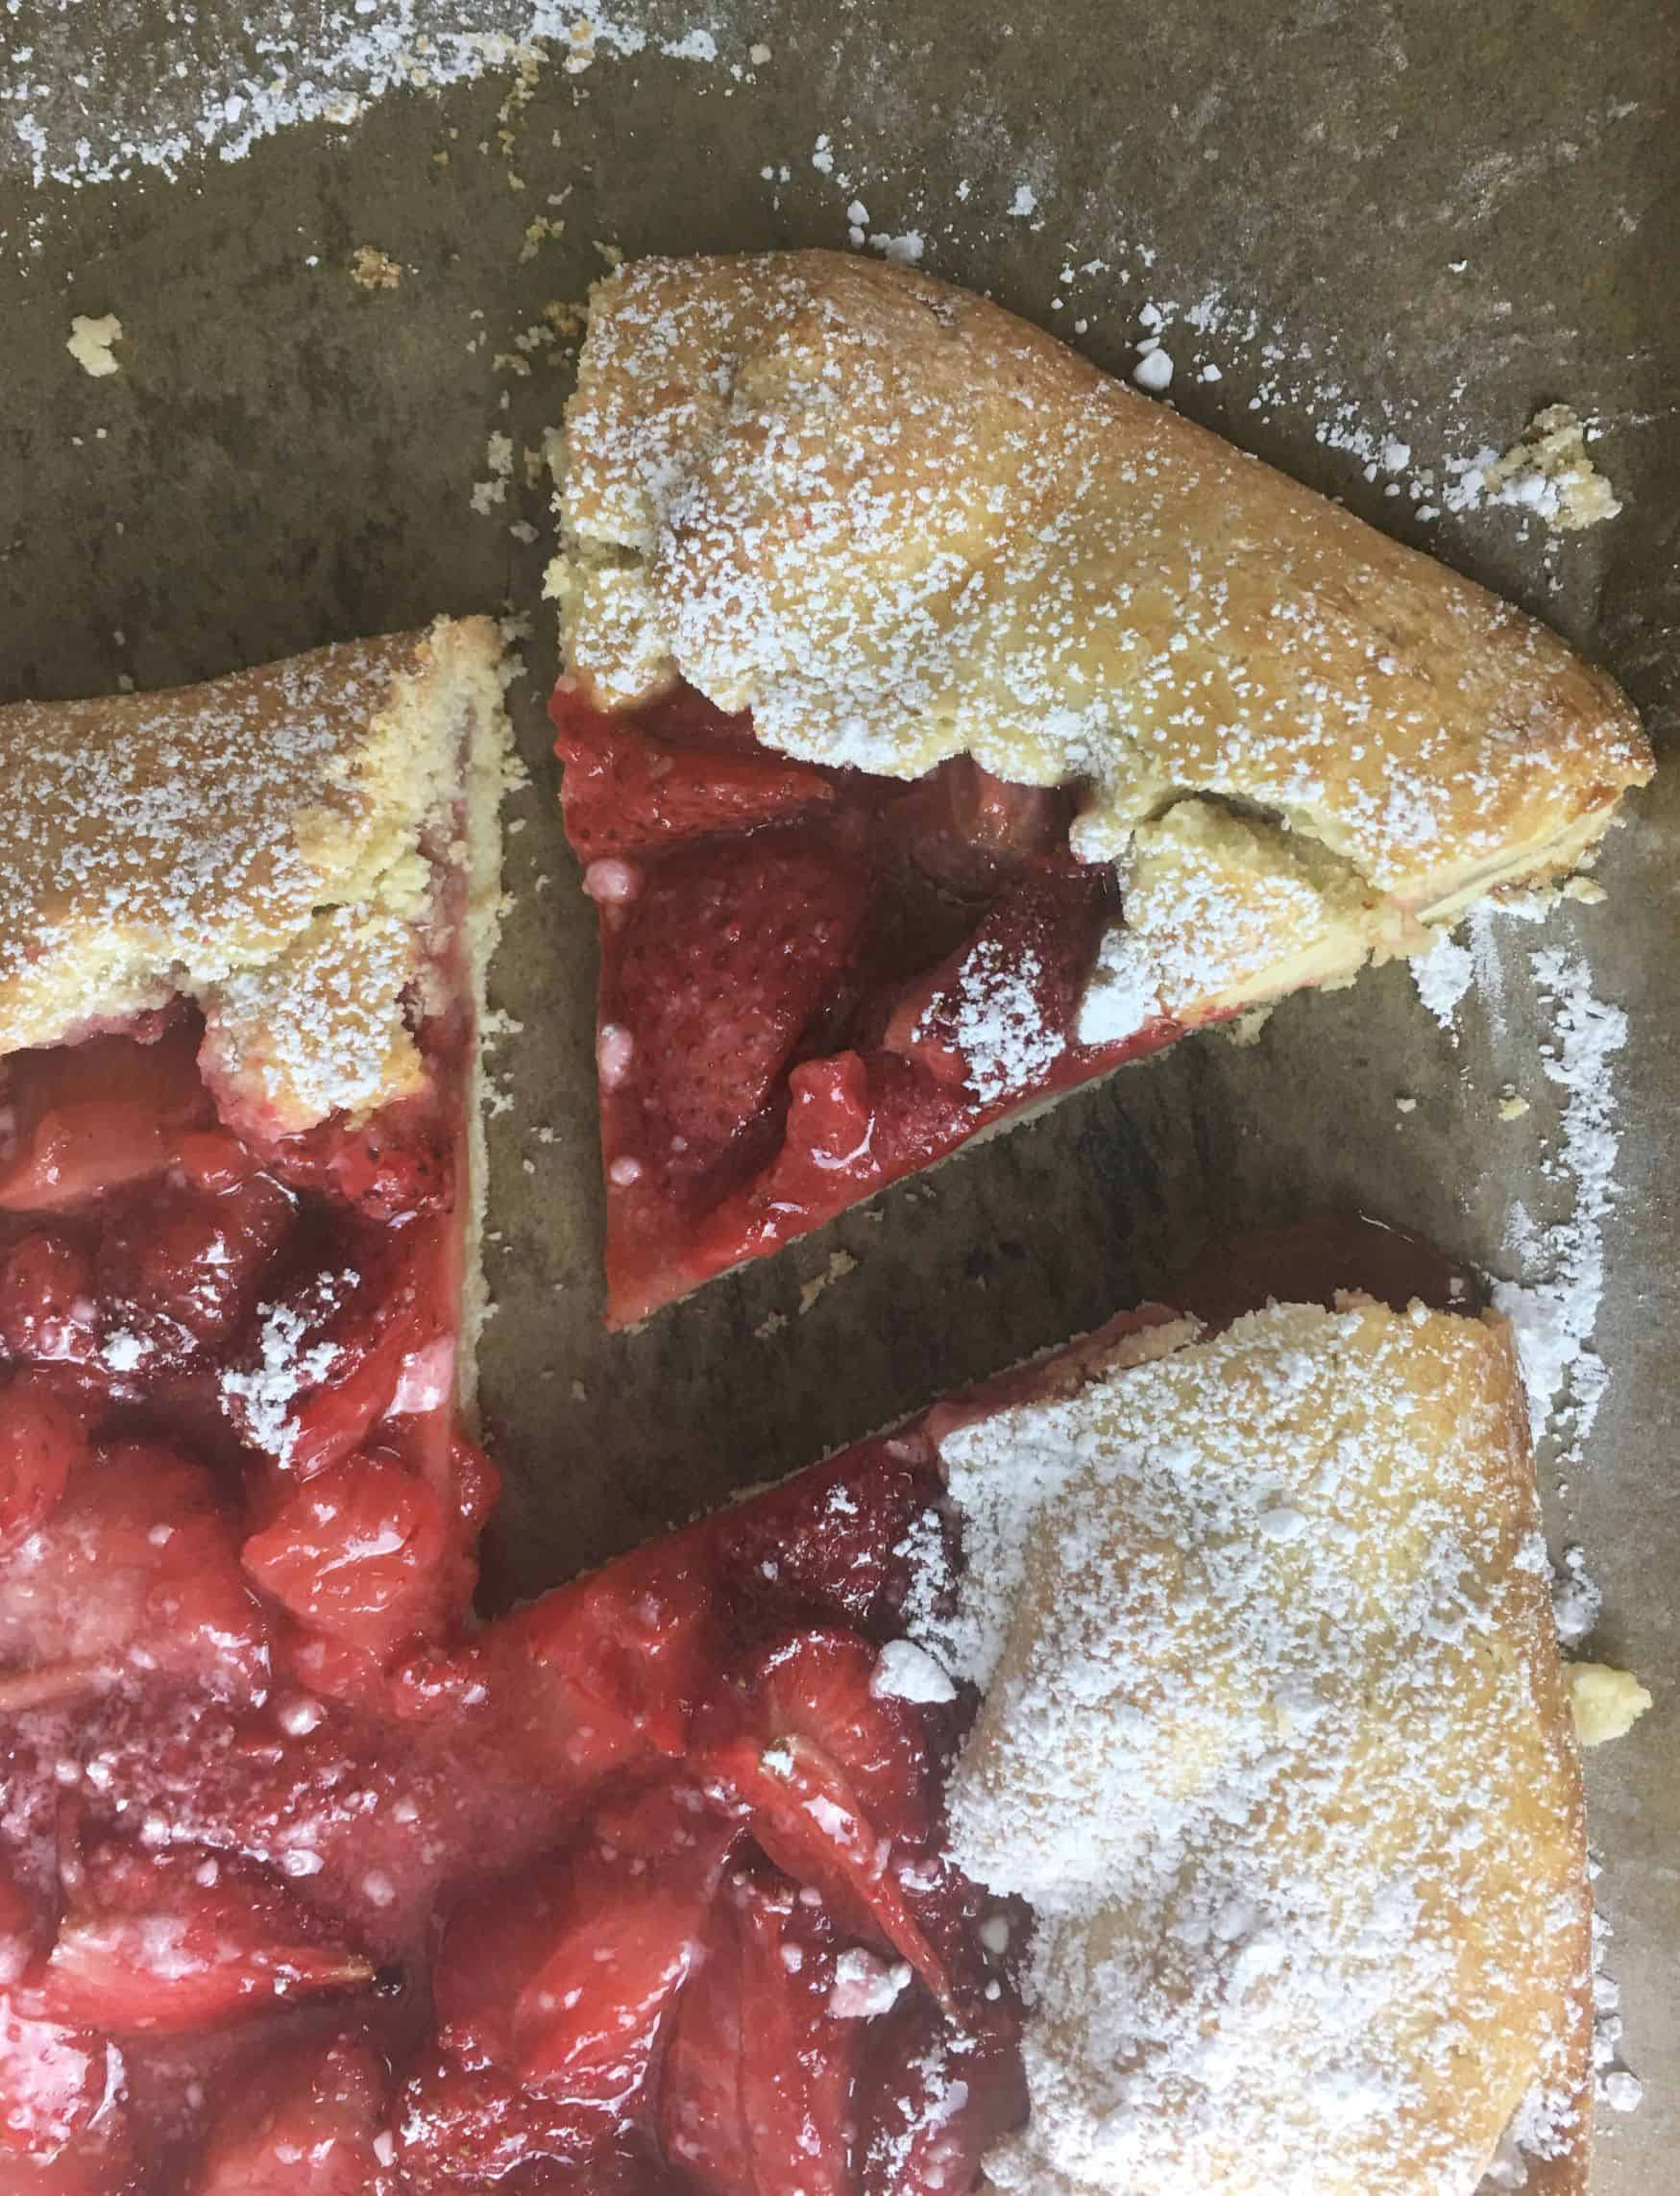 strawberry galette with cut slice.